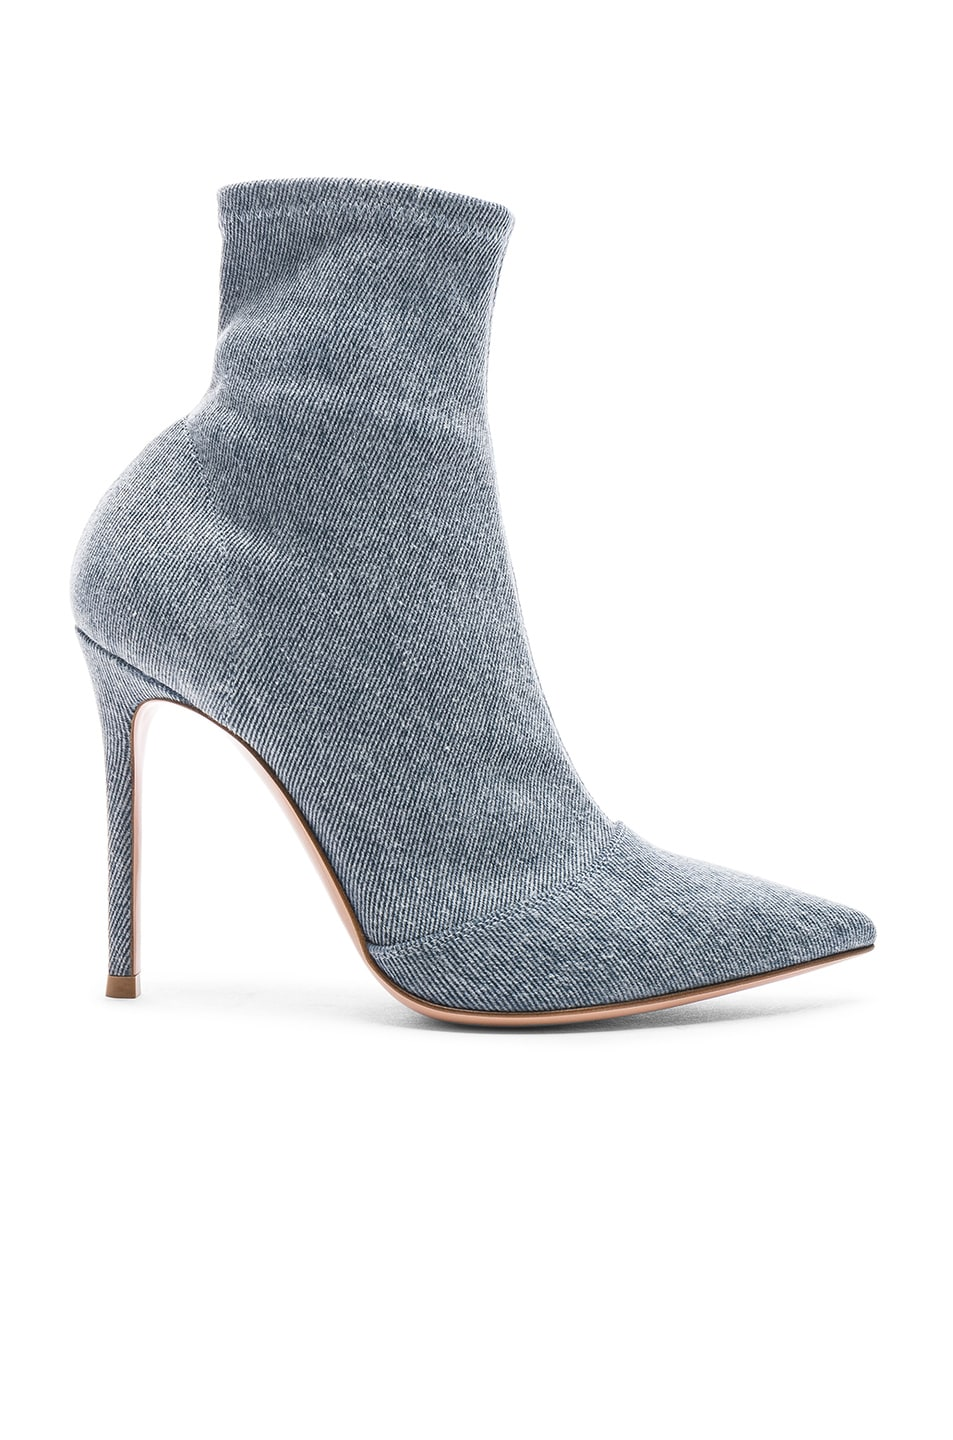 Gianvito Rossi Boots Denim Stretch Ankle Booties